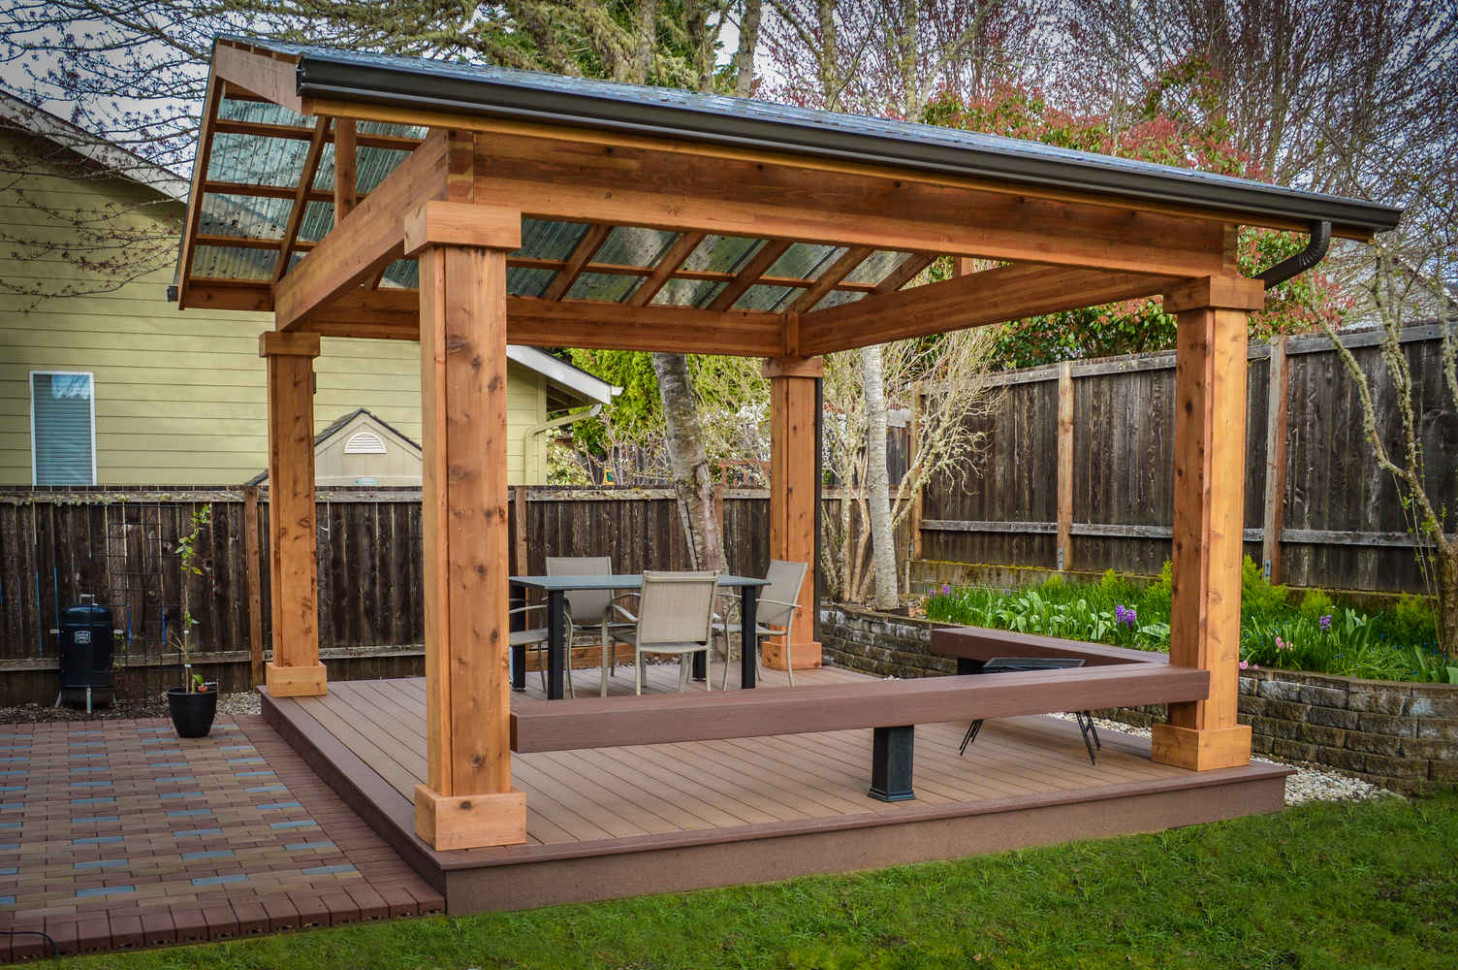 Suntuf DIY Palram Carports & Patio | Palram Industries Ltd Wooden Carports Spain